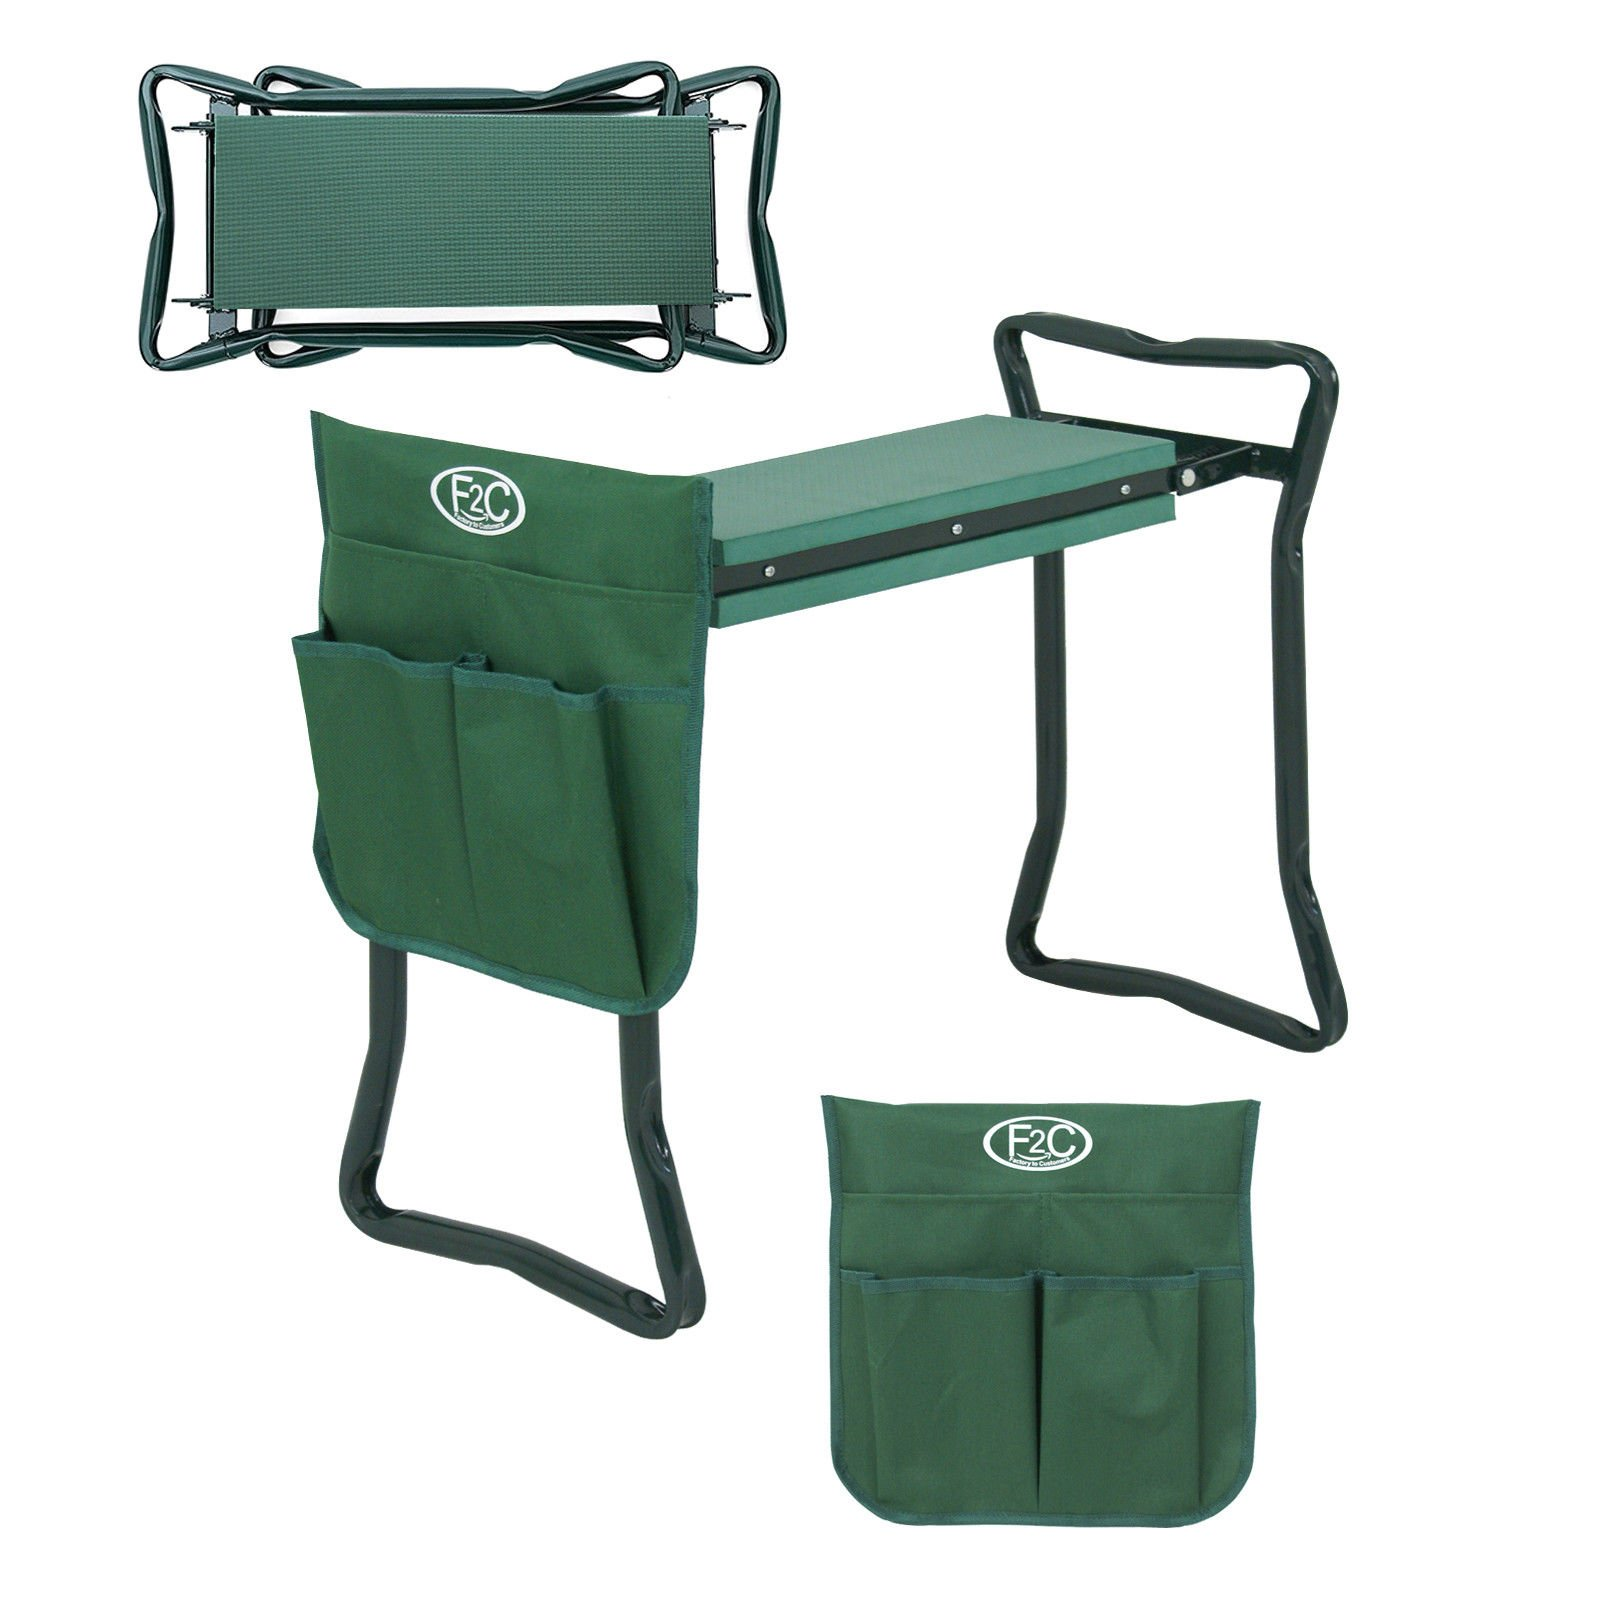 Has_Shop Garden Bench Foldable Kneeler Stool Soft Cushion Seat Pad Kneeling w Tool Pouch by Has_Shop (Image #8)